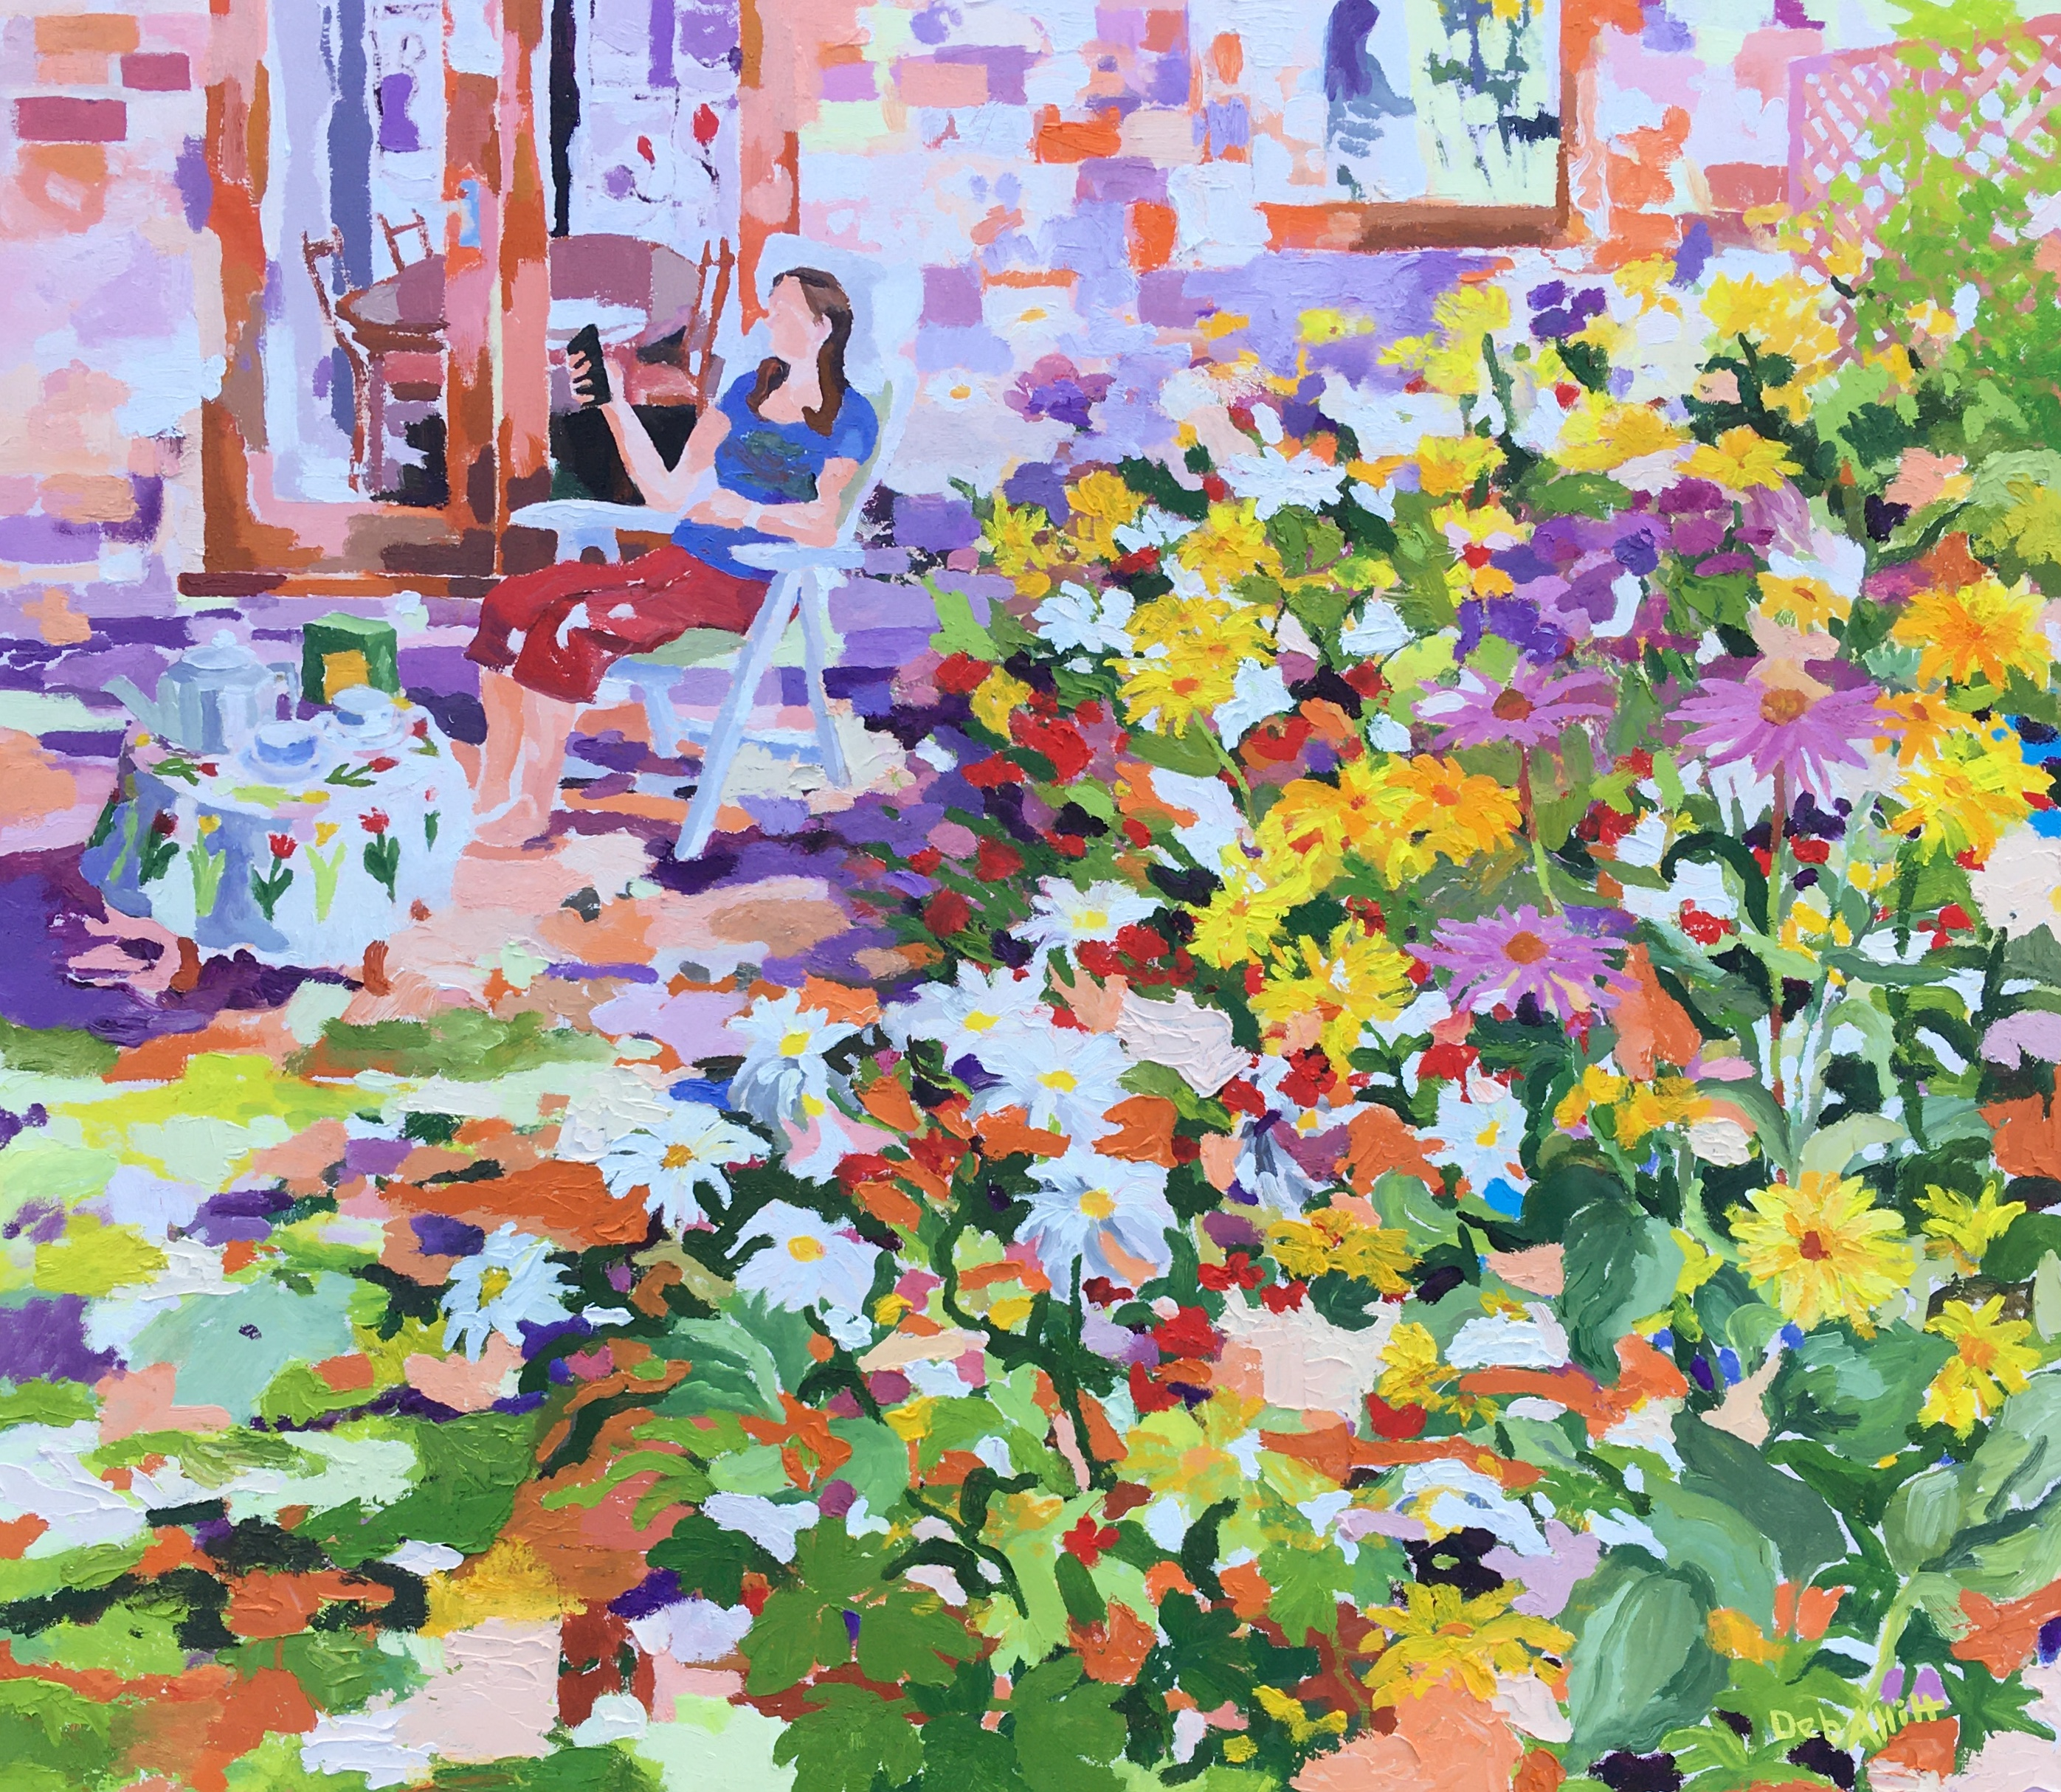 Chilling Out in the Flower Garden. Oil on canvas. 70 x 80 cm